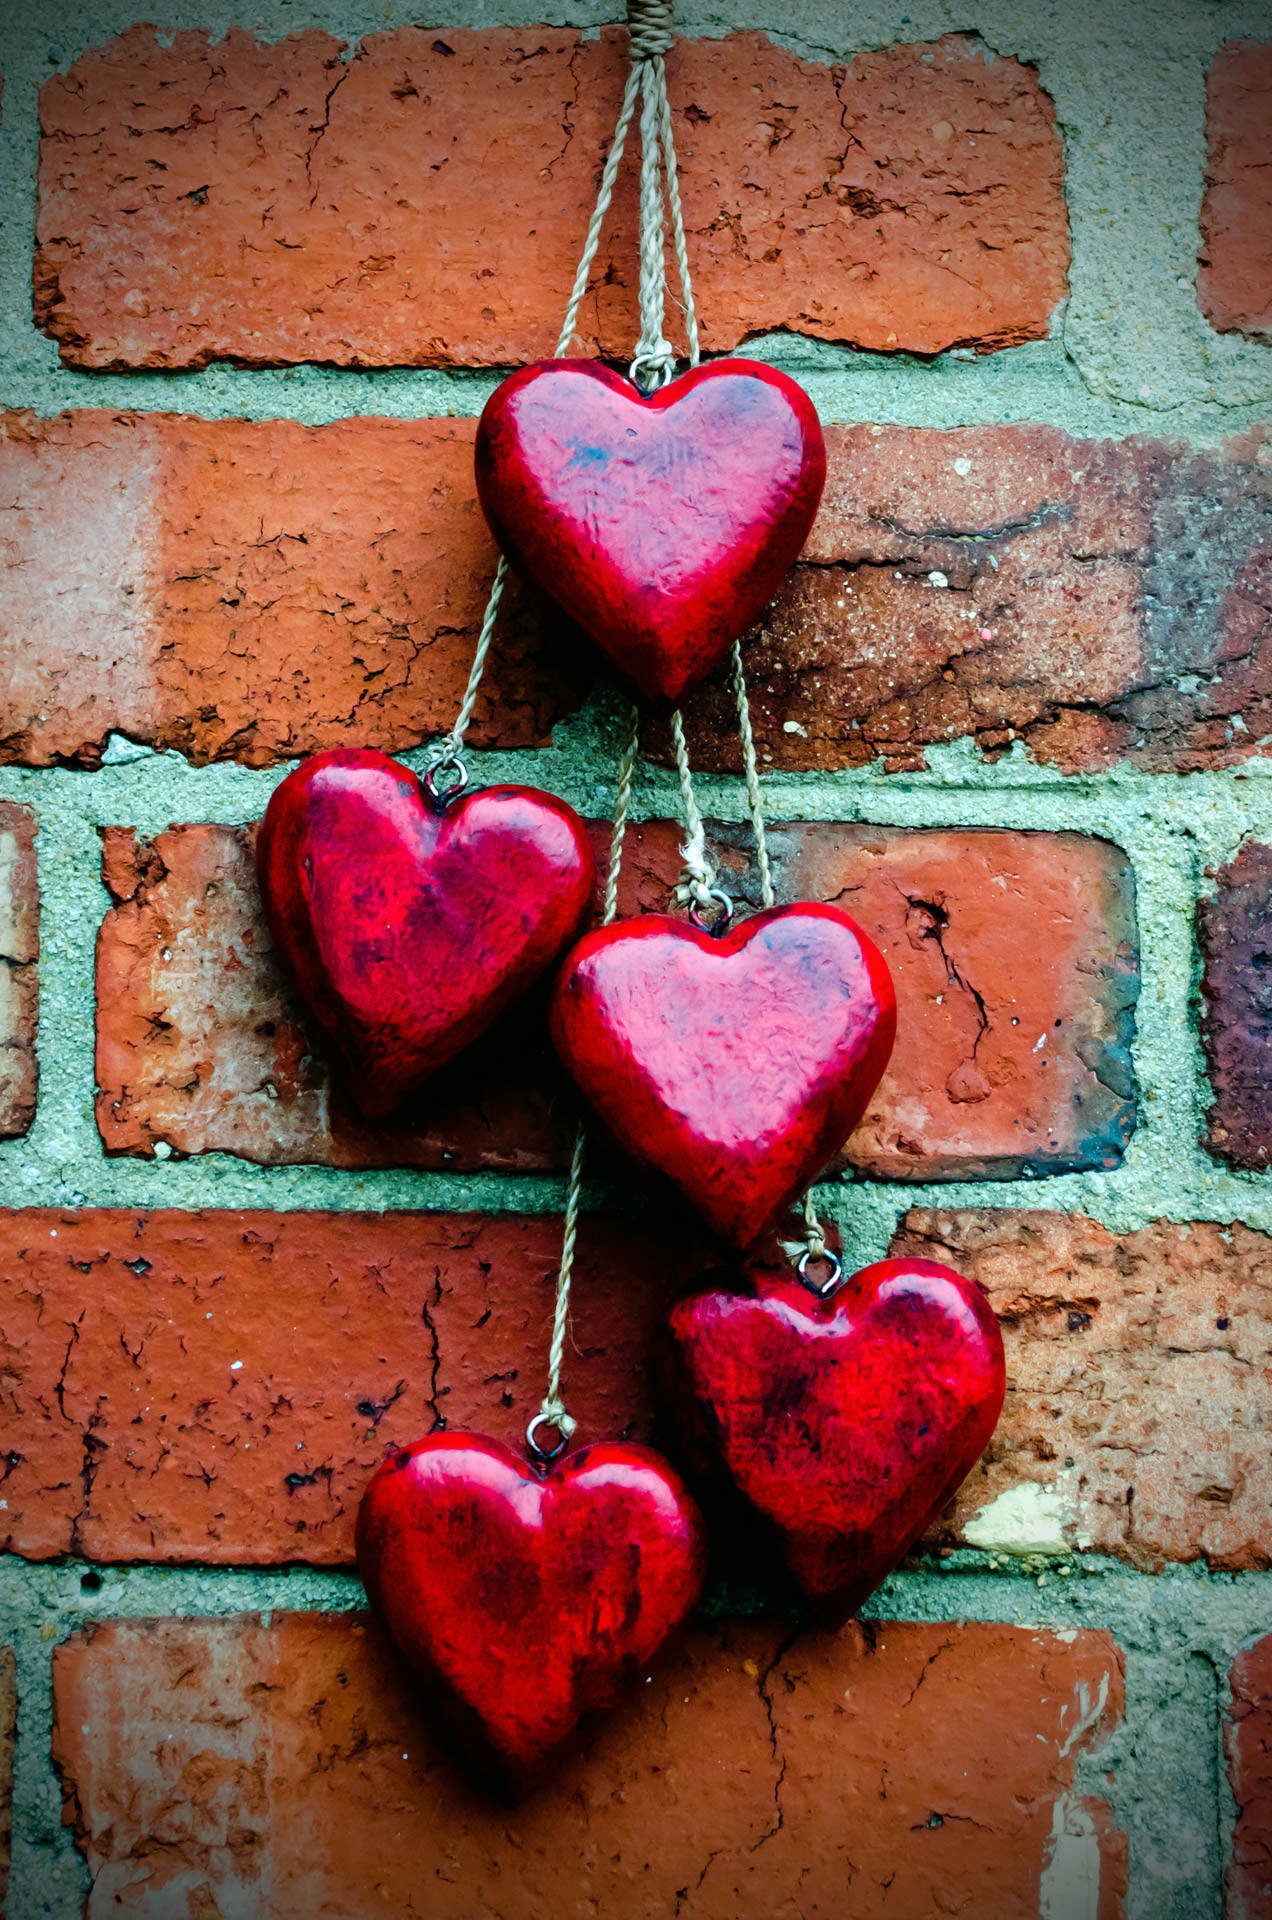 red heart on a brick wall